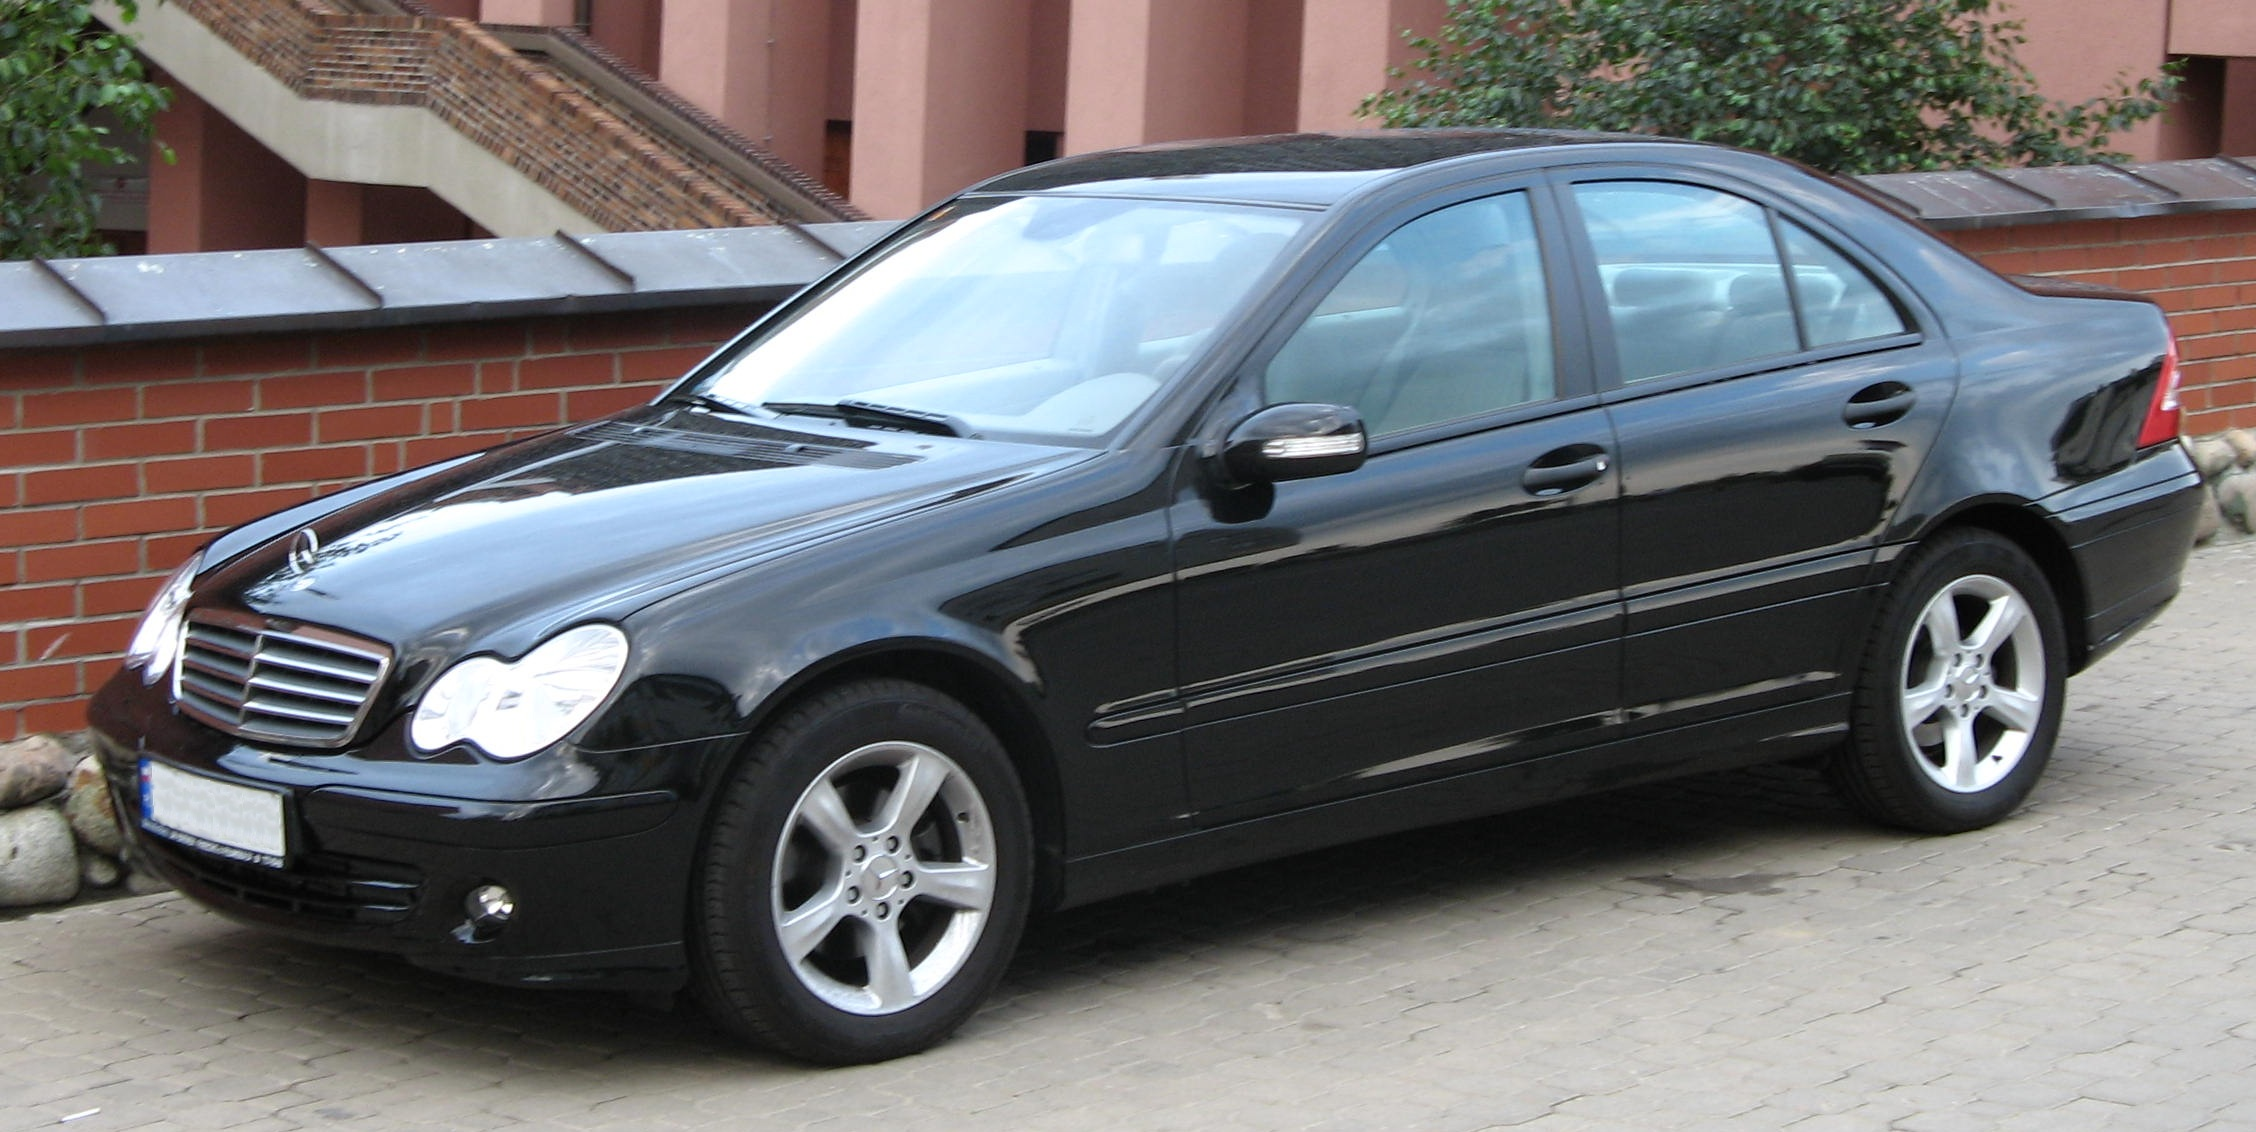 file mercedes benz c180 kompressor w203 jpg wikimedia commons. Black Bedroom Furniture Sets. Home Design Ideas